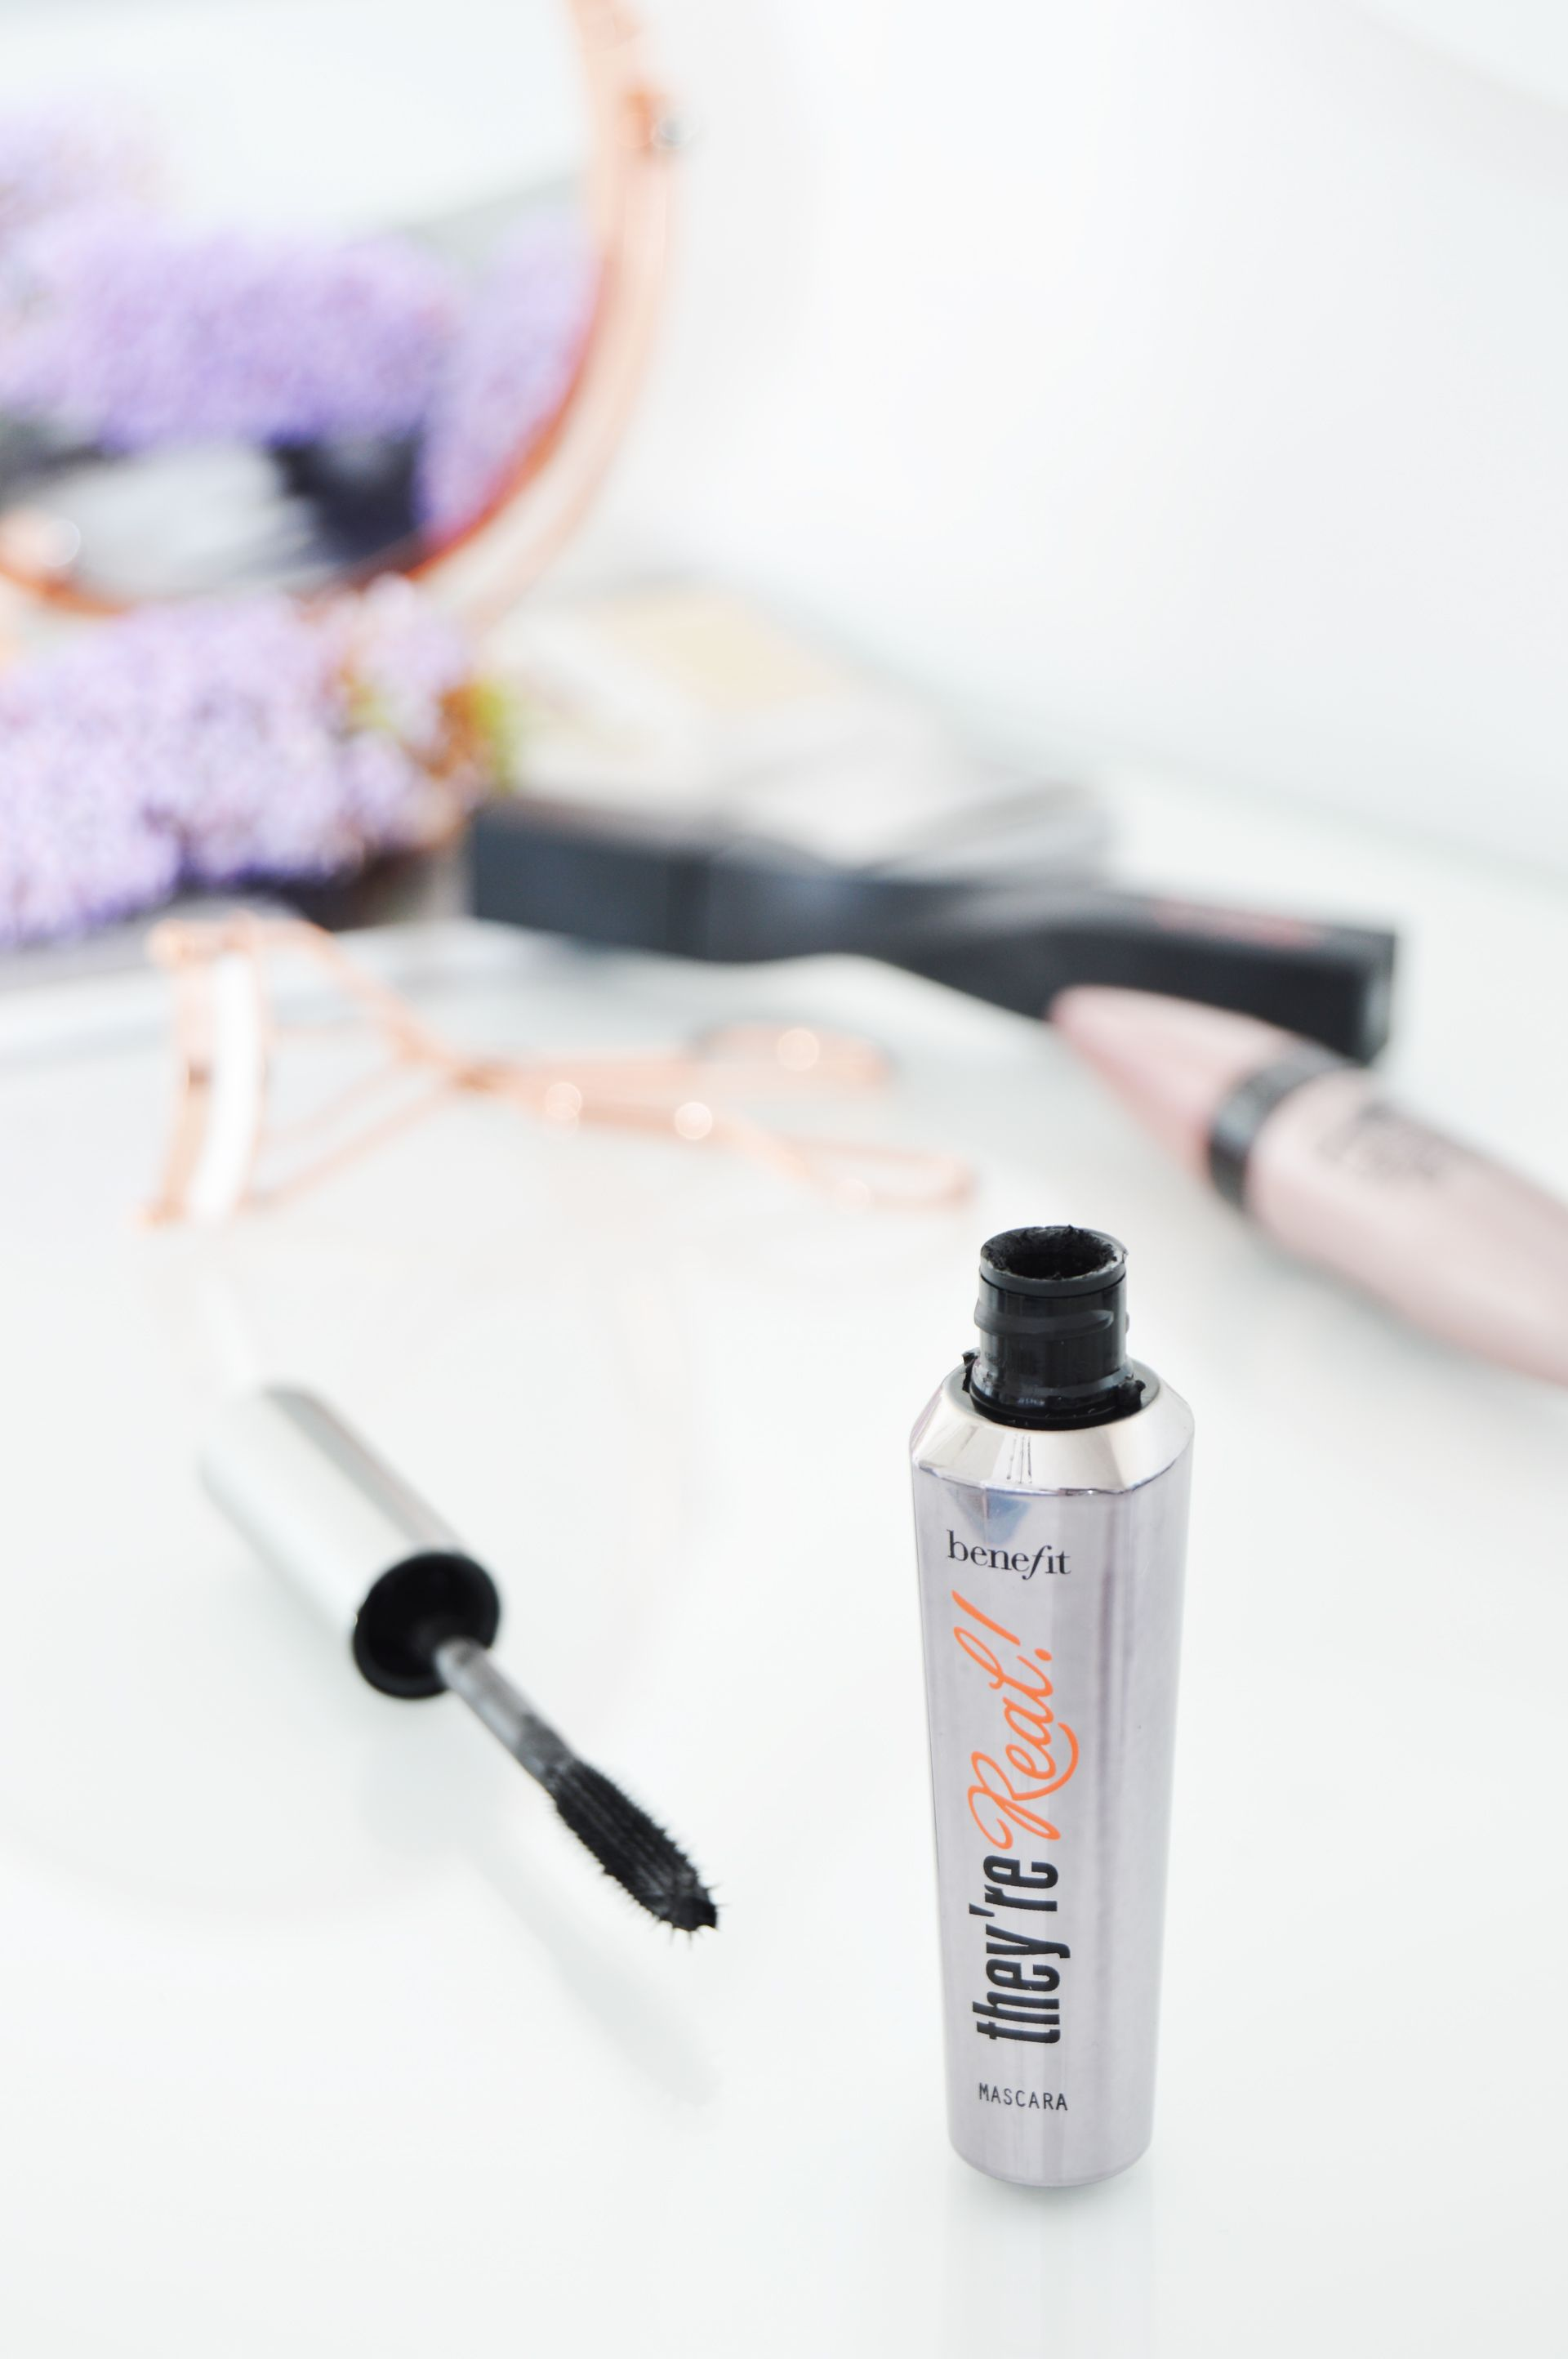 Benefit They're Real mascara claims to lengthen, volumise, curl and lift your lashes.